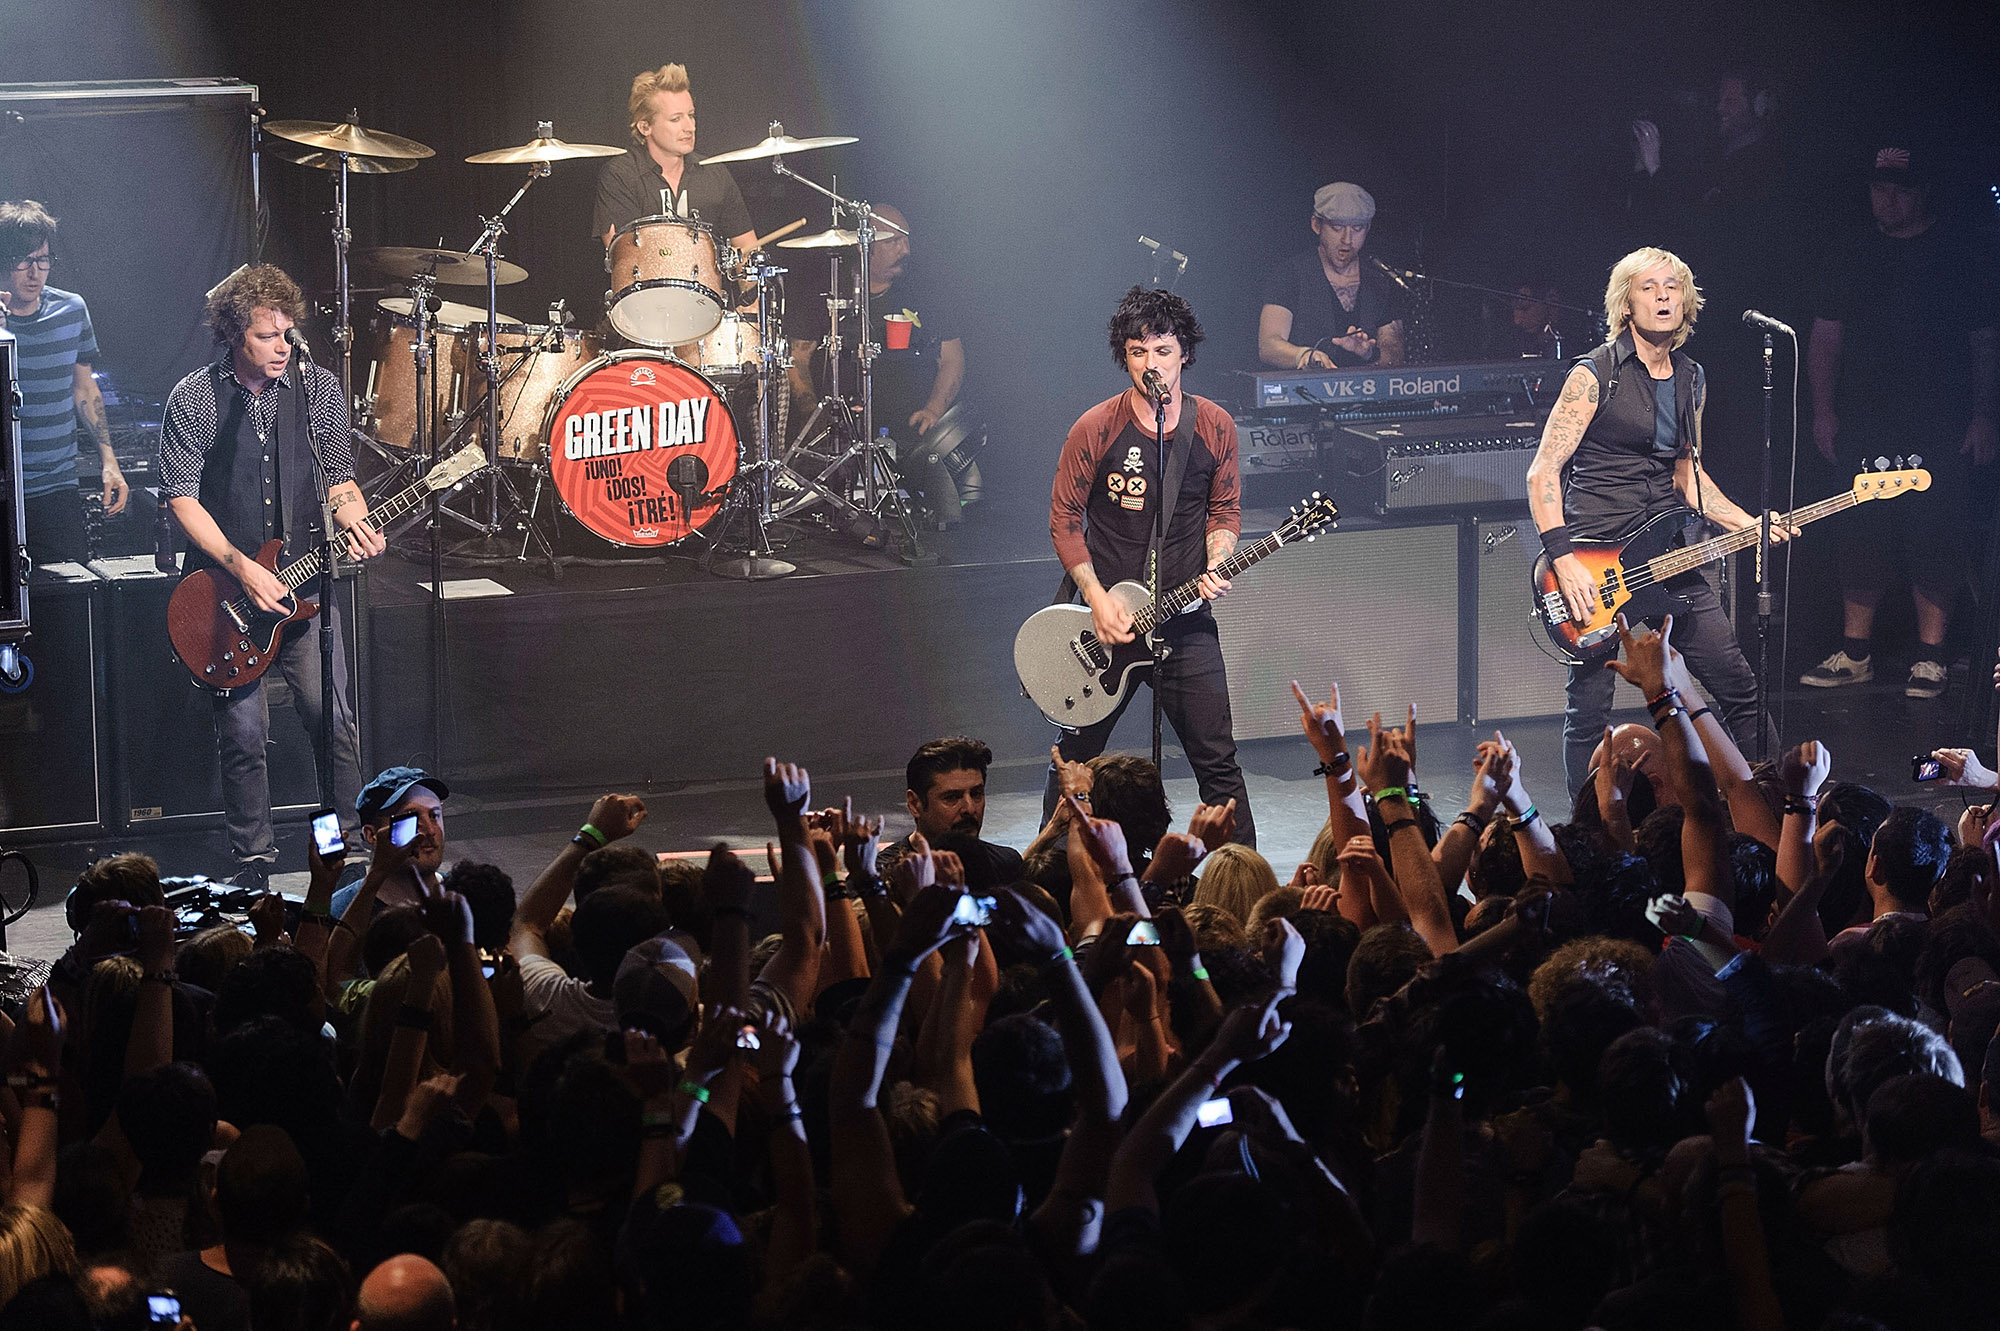 Guitarist Jason White, drummer Tre Cool, guitarist/ vocalist Billie Joe Armstrong and bassist Mike Dirnt of the rock band Green Day perform at Irving Plaza on September 15, 2012 in New York City.  (Photo by Matthew Eisman/Getty Images)